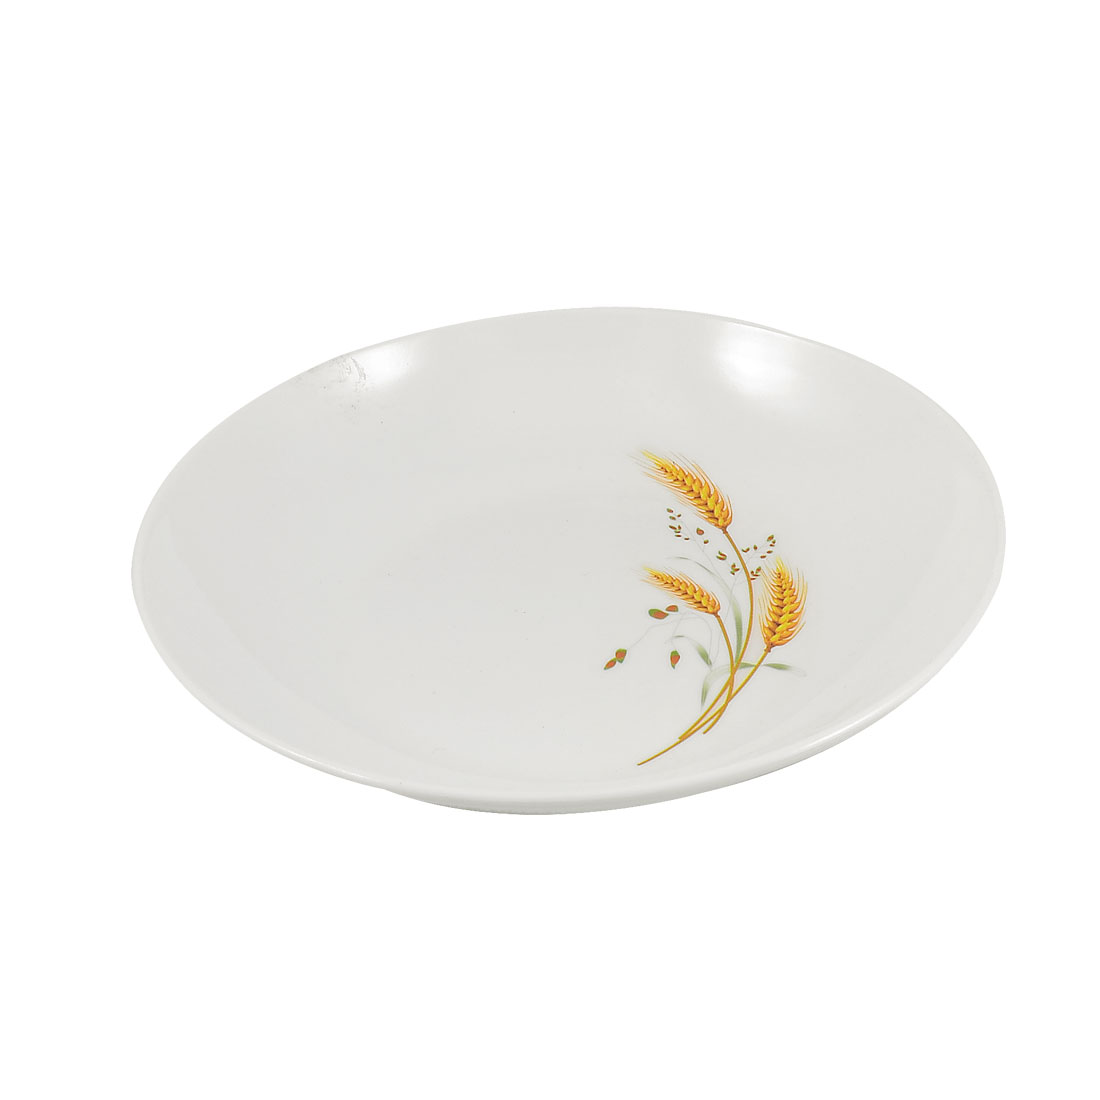 "7.5"" Dia Wheatear Print Round Hard Plastic Biscuit Fruit Dish Plate White"